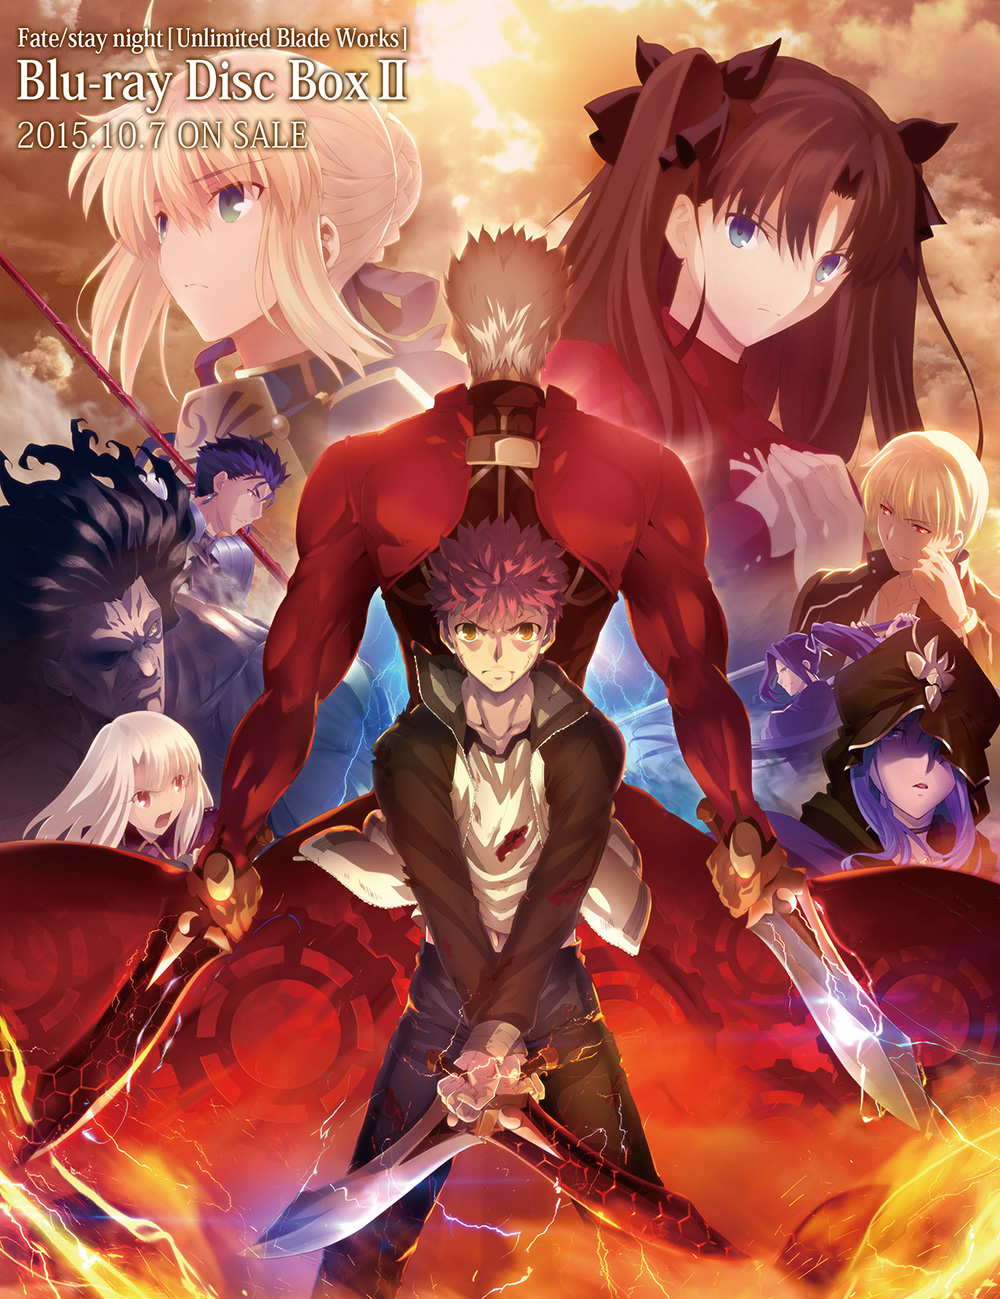 Fate-stay-night-Unlimited-Blade-Works-Blu-ray-2-Visual